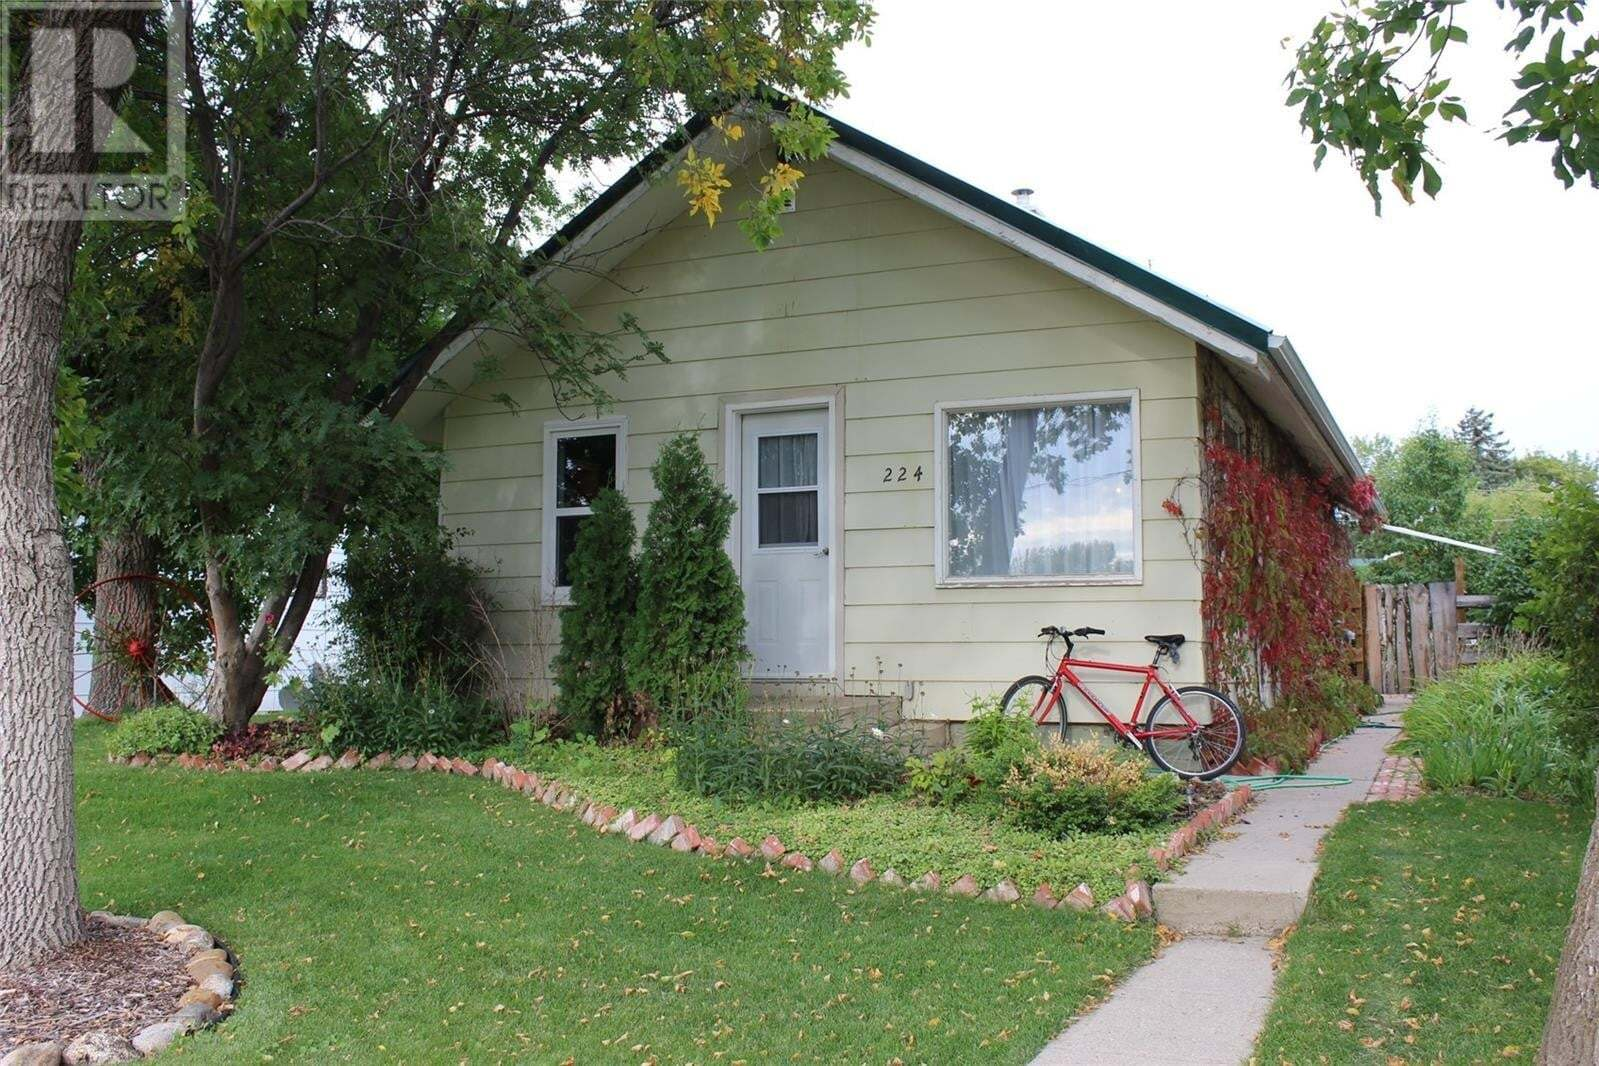 House for sale at 224 4th St E Shaunavon Saskatchewan - MLS: SK827033